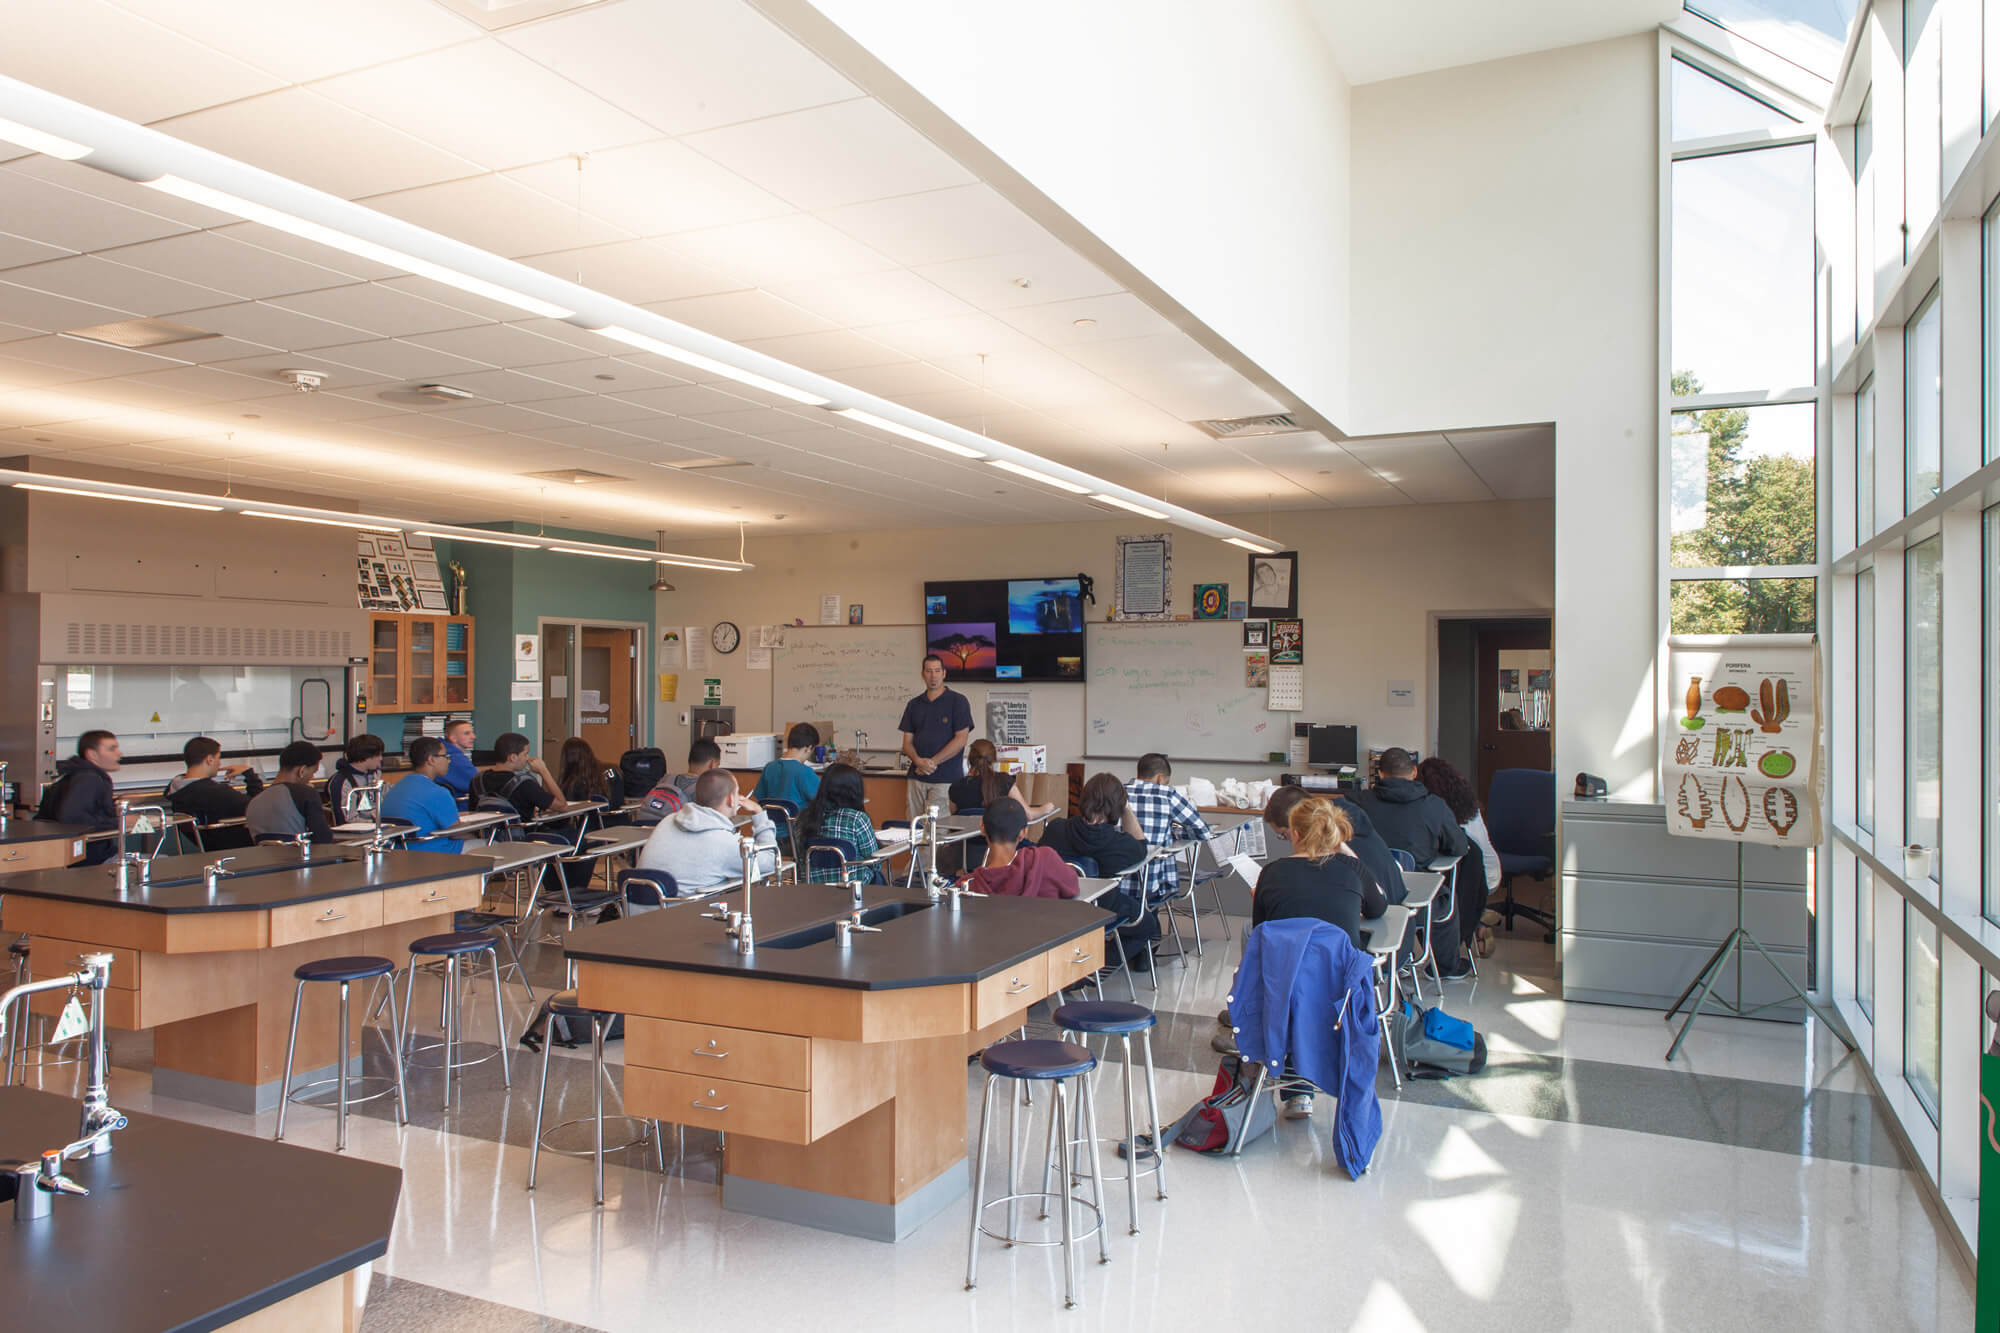 Students sitting at their desks in a science classroom with lab spaces to the left, and floor-to-ceiling windows to the right, letting in natural light.